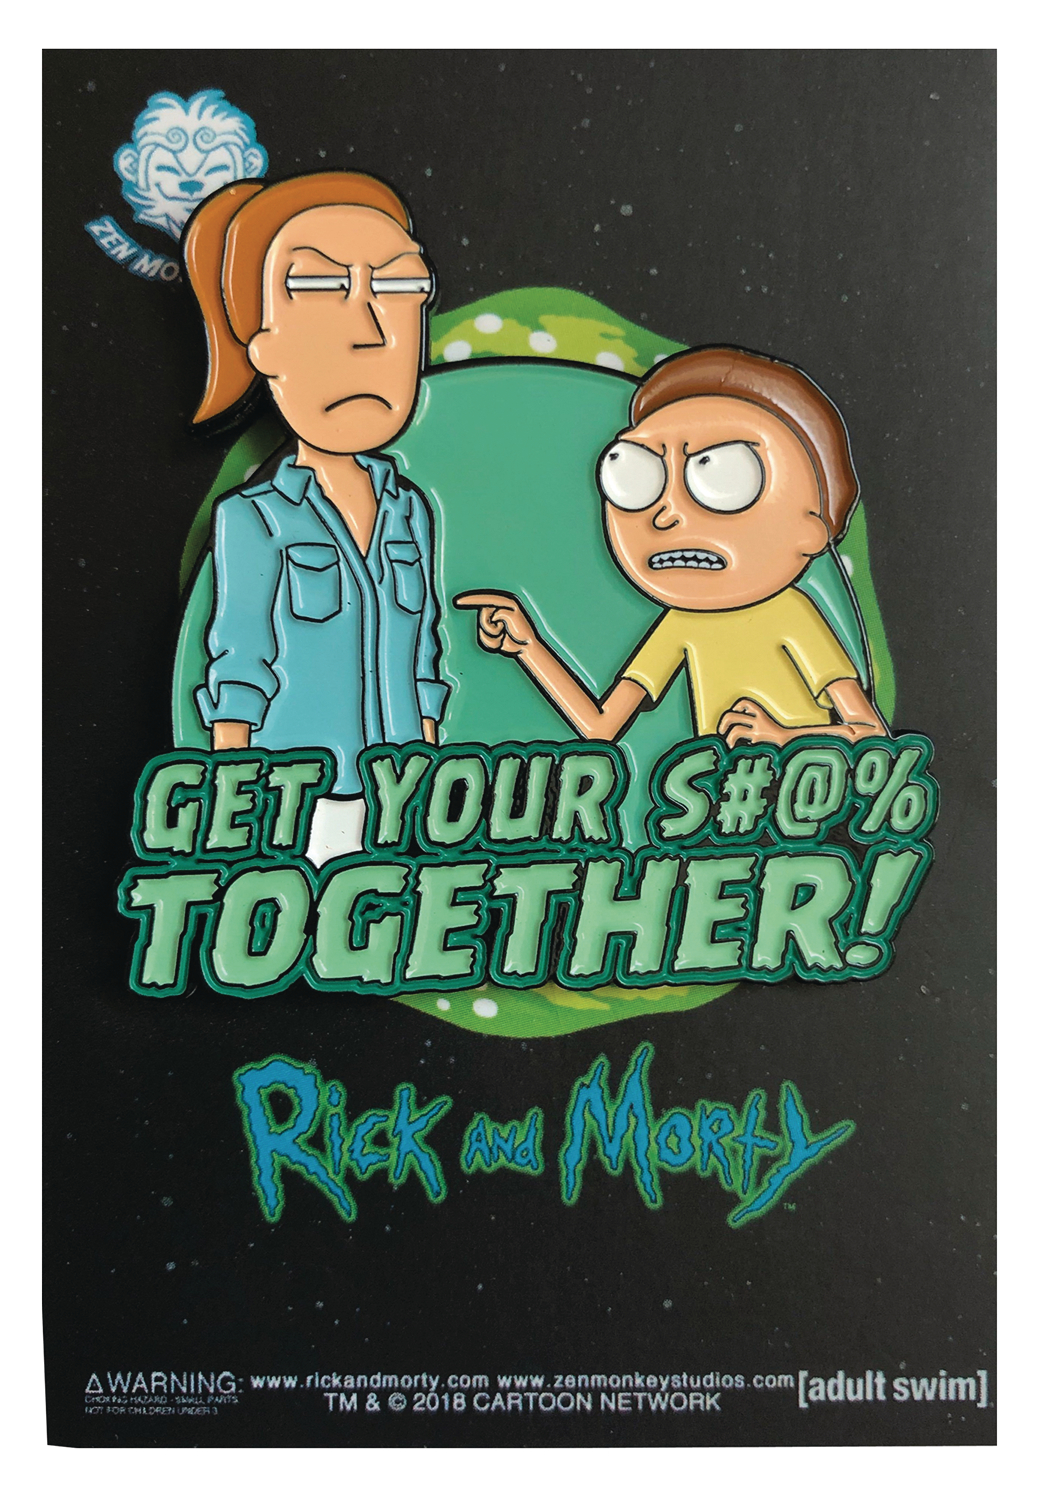 RICK AND MORTY GET IT TOGETHER PIN